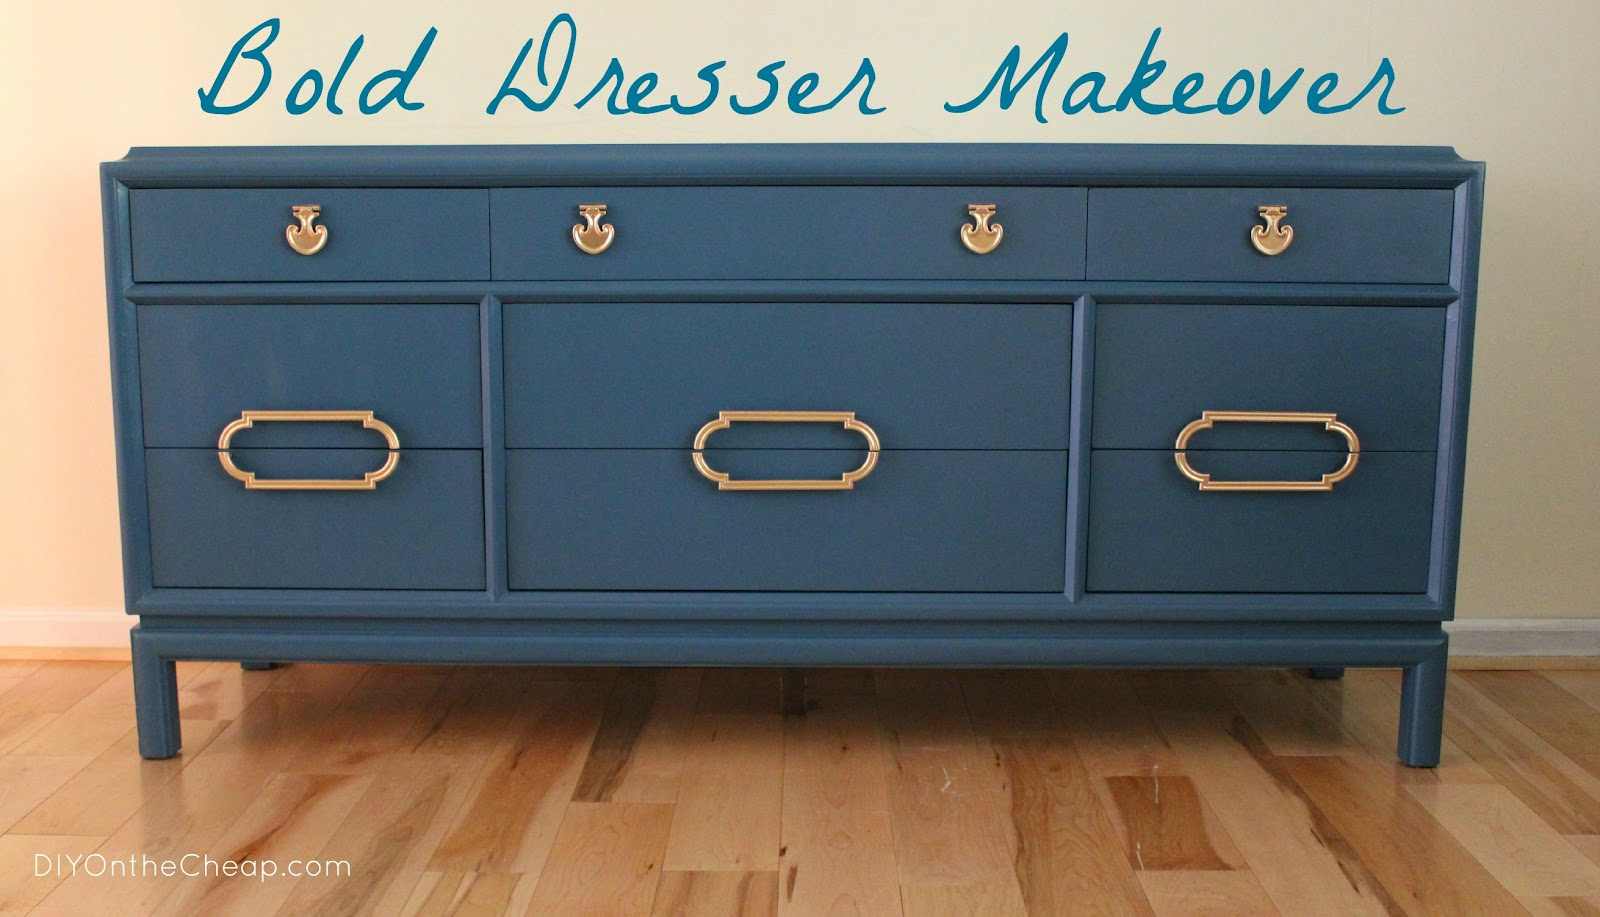 bold modern dresser makeover  erin spain - i posted last week about the dresser that we found on craigslist and intendto use as a sideboard in our living roomoffice as i mentioned before